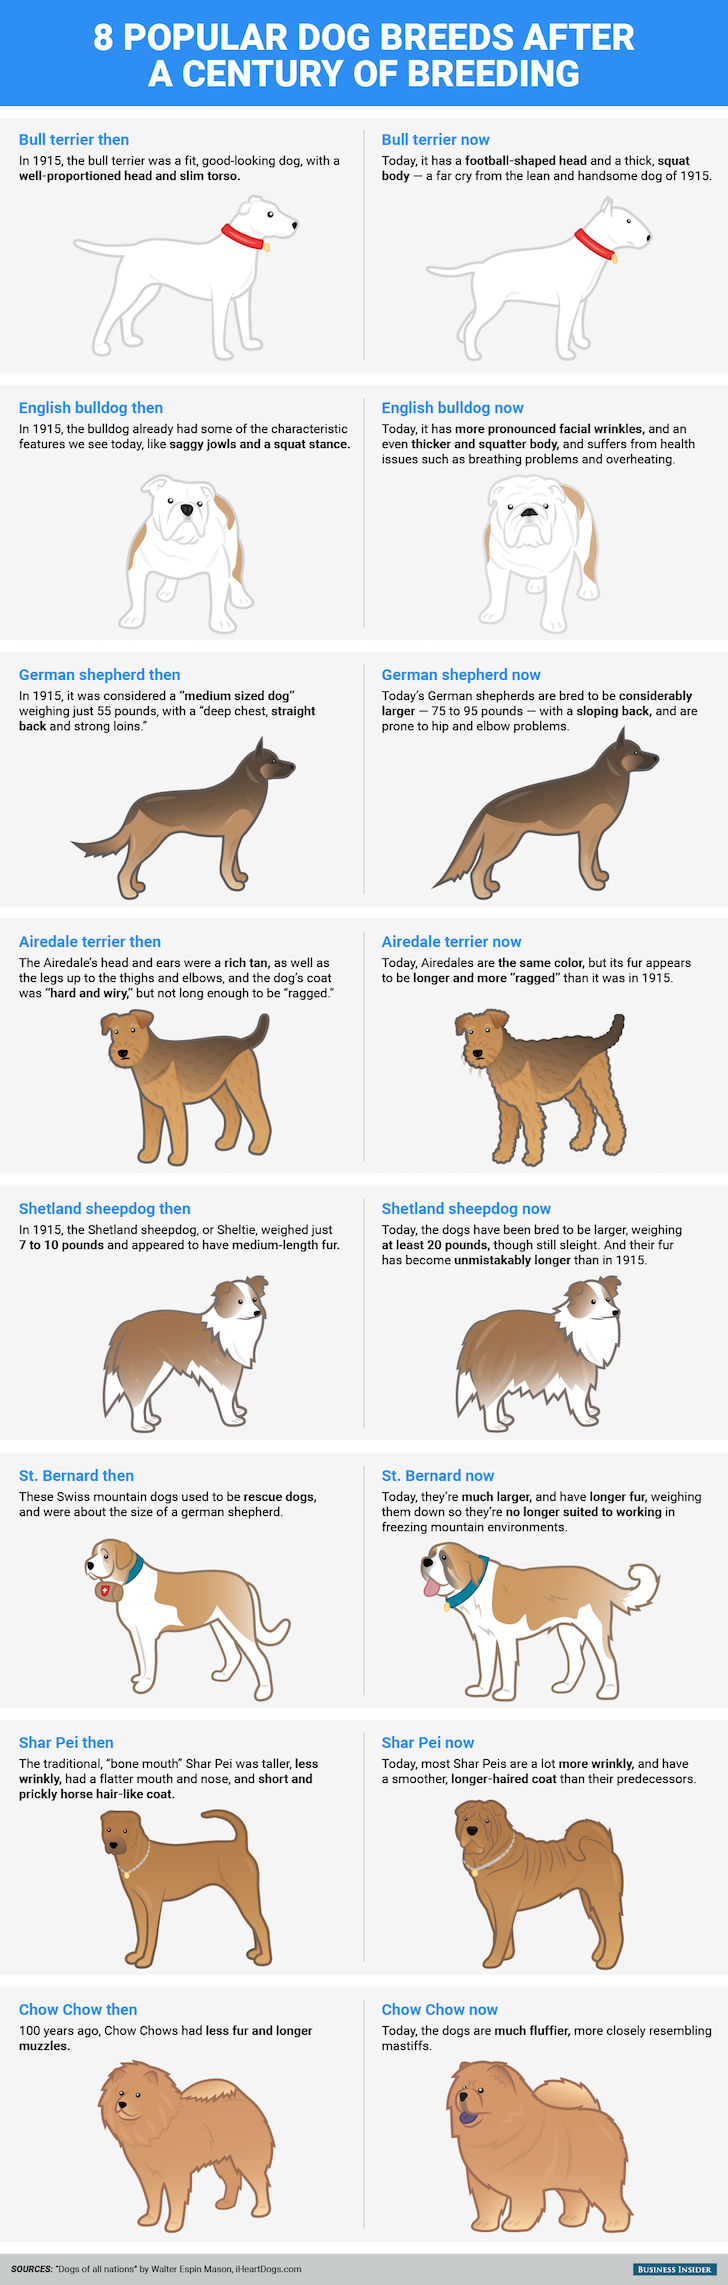 Popular Dog Breeds Before And After 100 years | Vanillapup